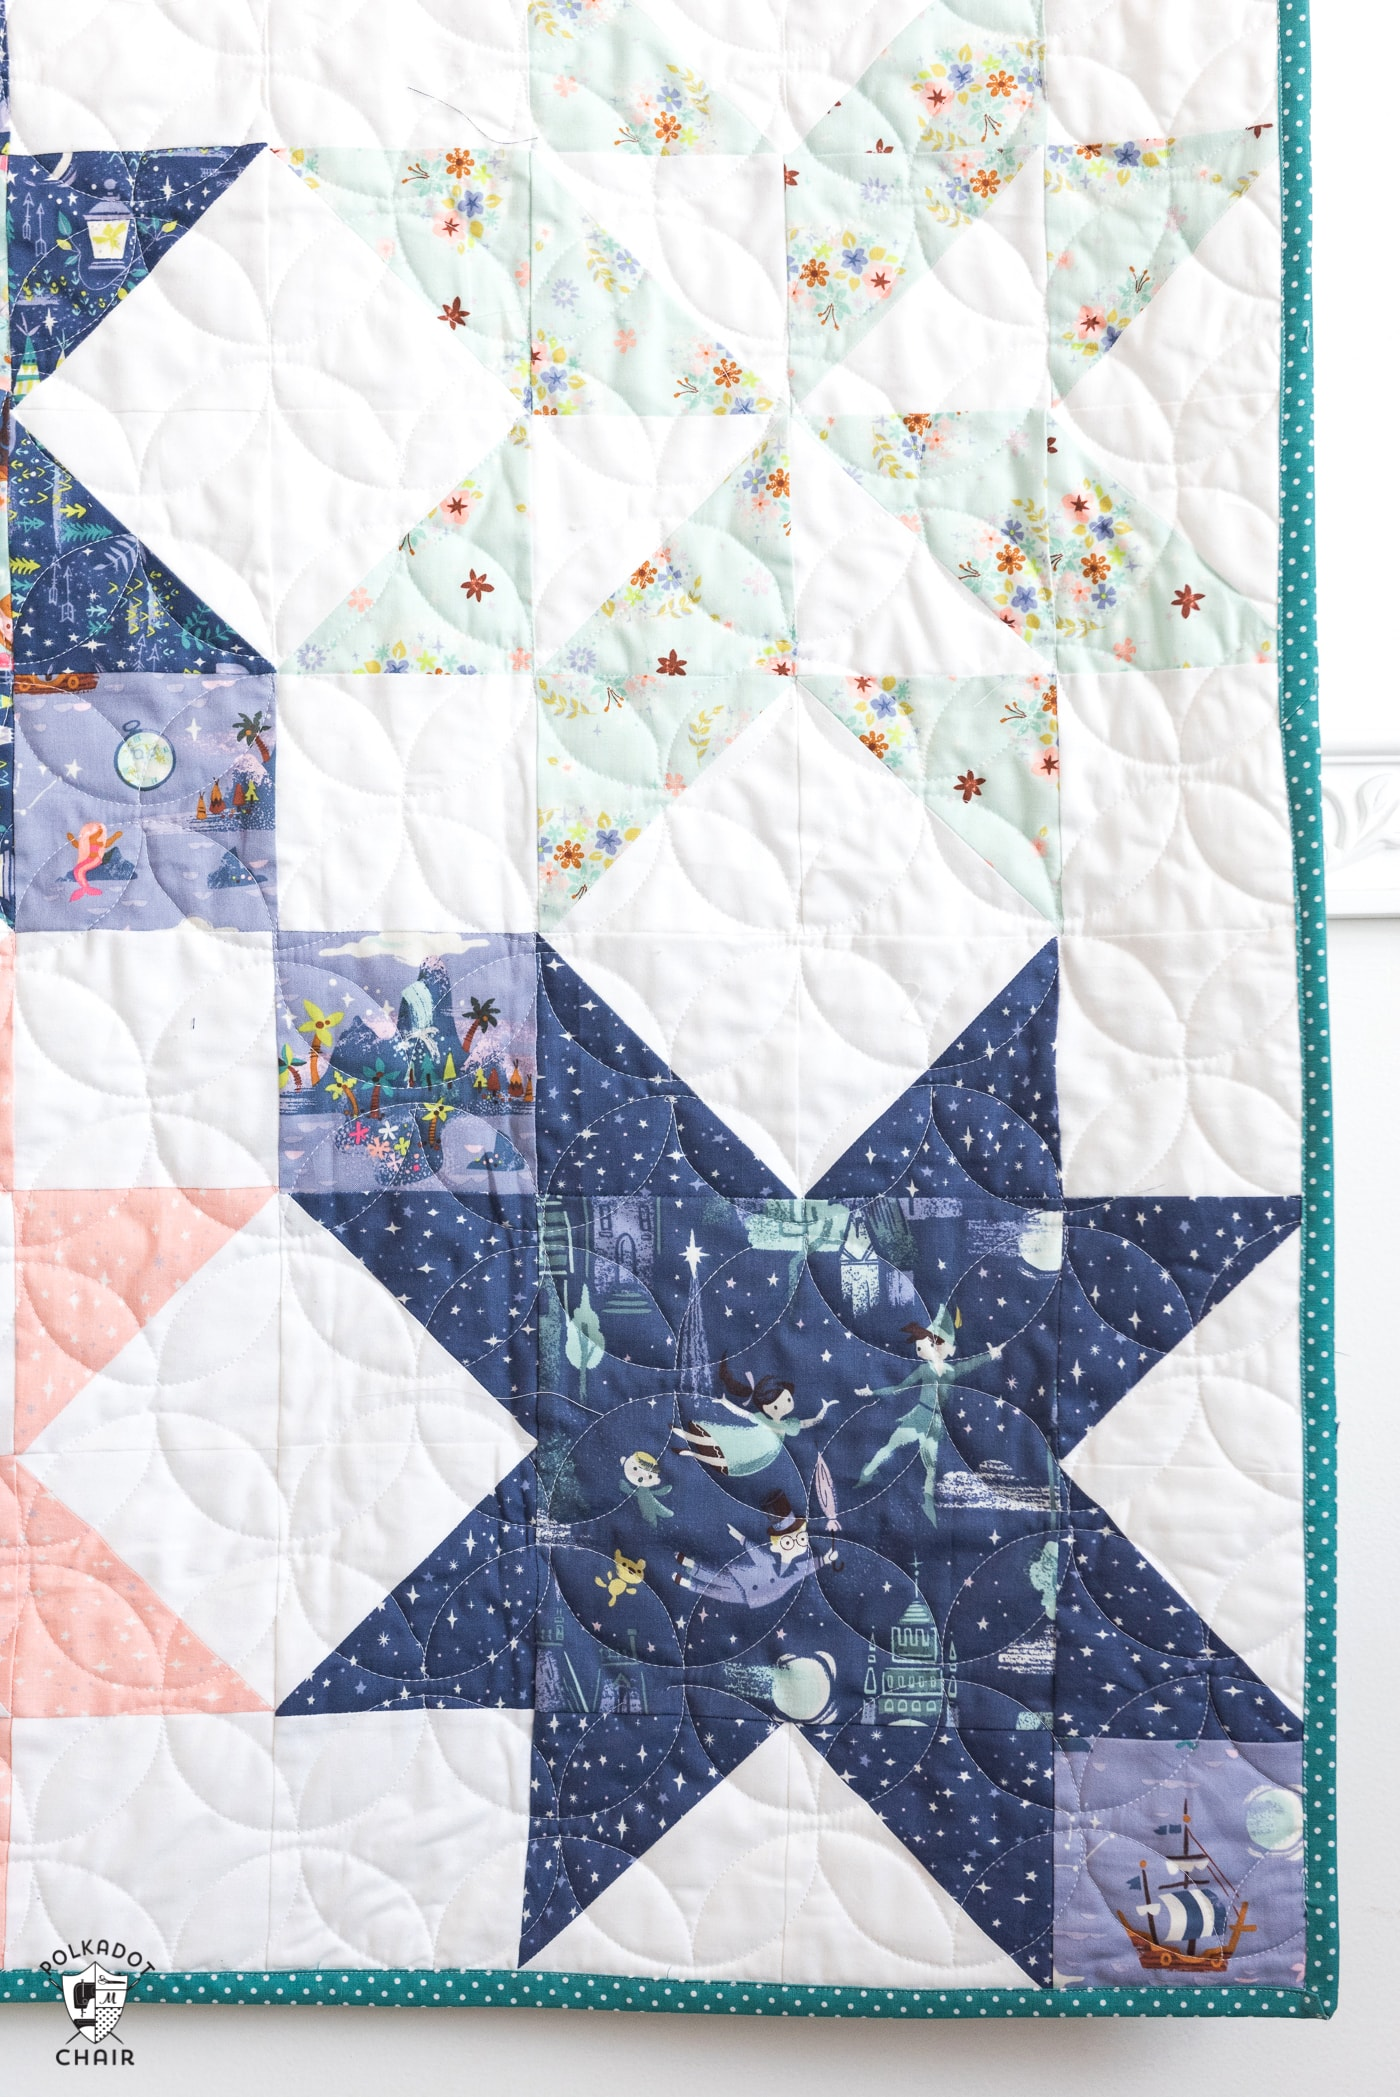 3 New Quilt Patterns Amp Shop Discount Code The Polka Dot